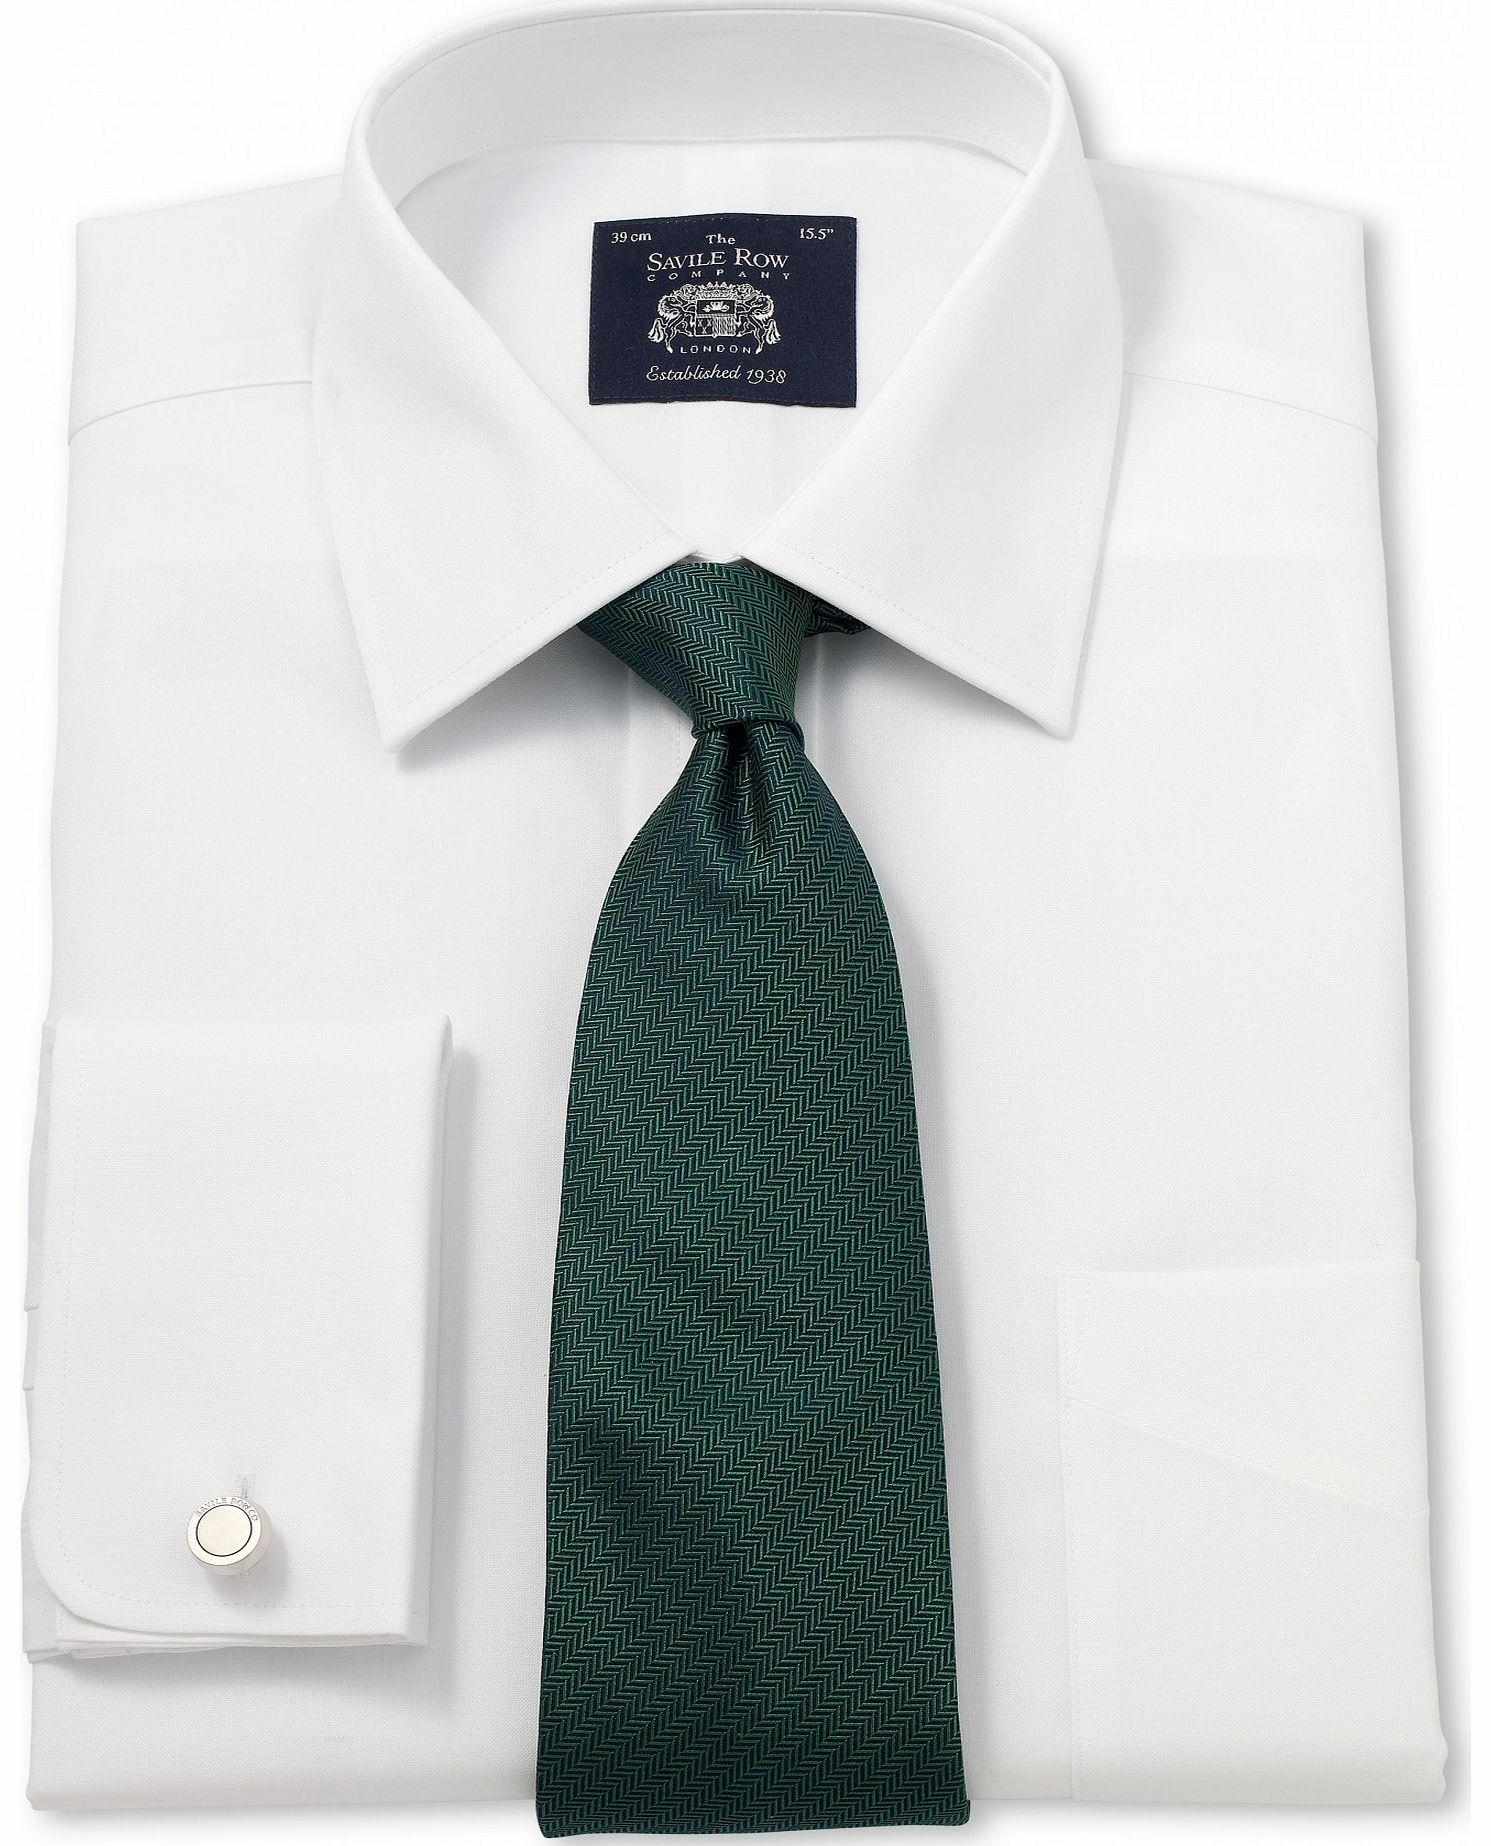 Savile Row Company White Non-Iron Classic Fit Shirt 17 1/2`` Double product image